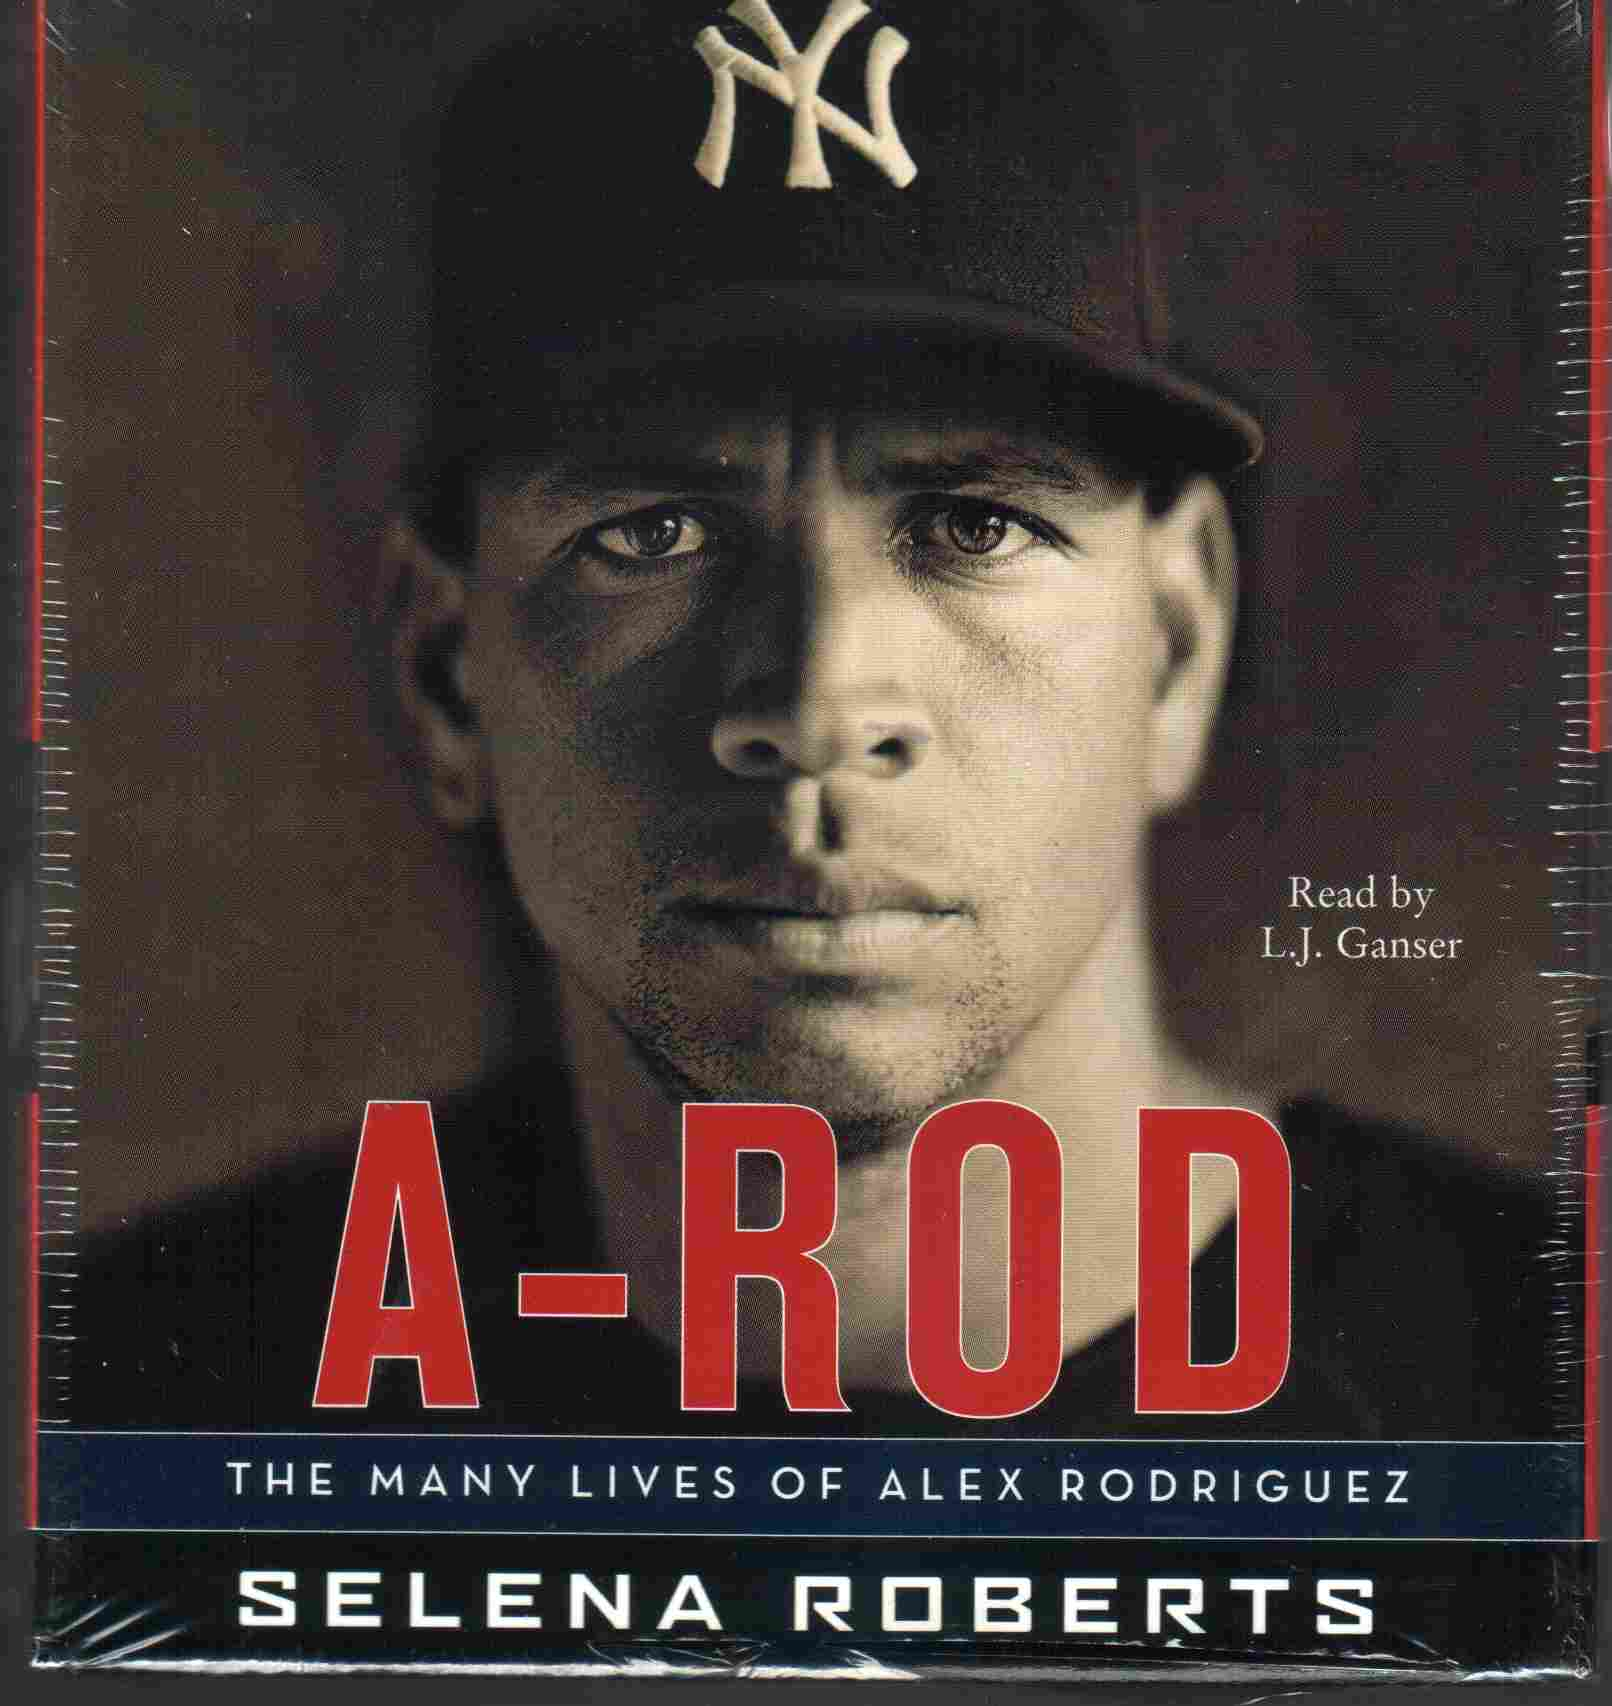 A-ROD by Selena Roberts